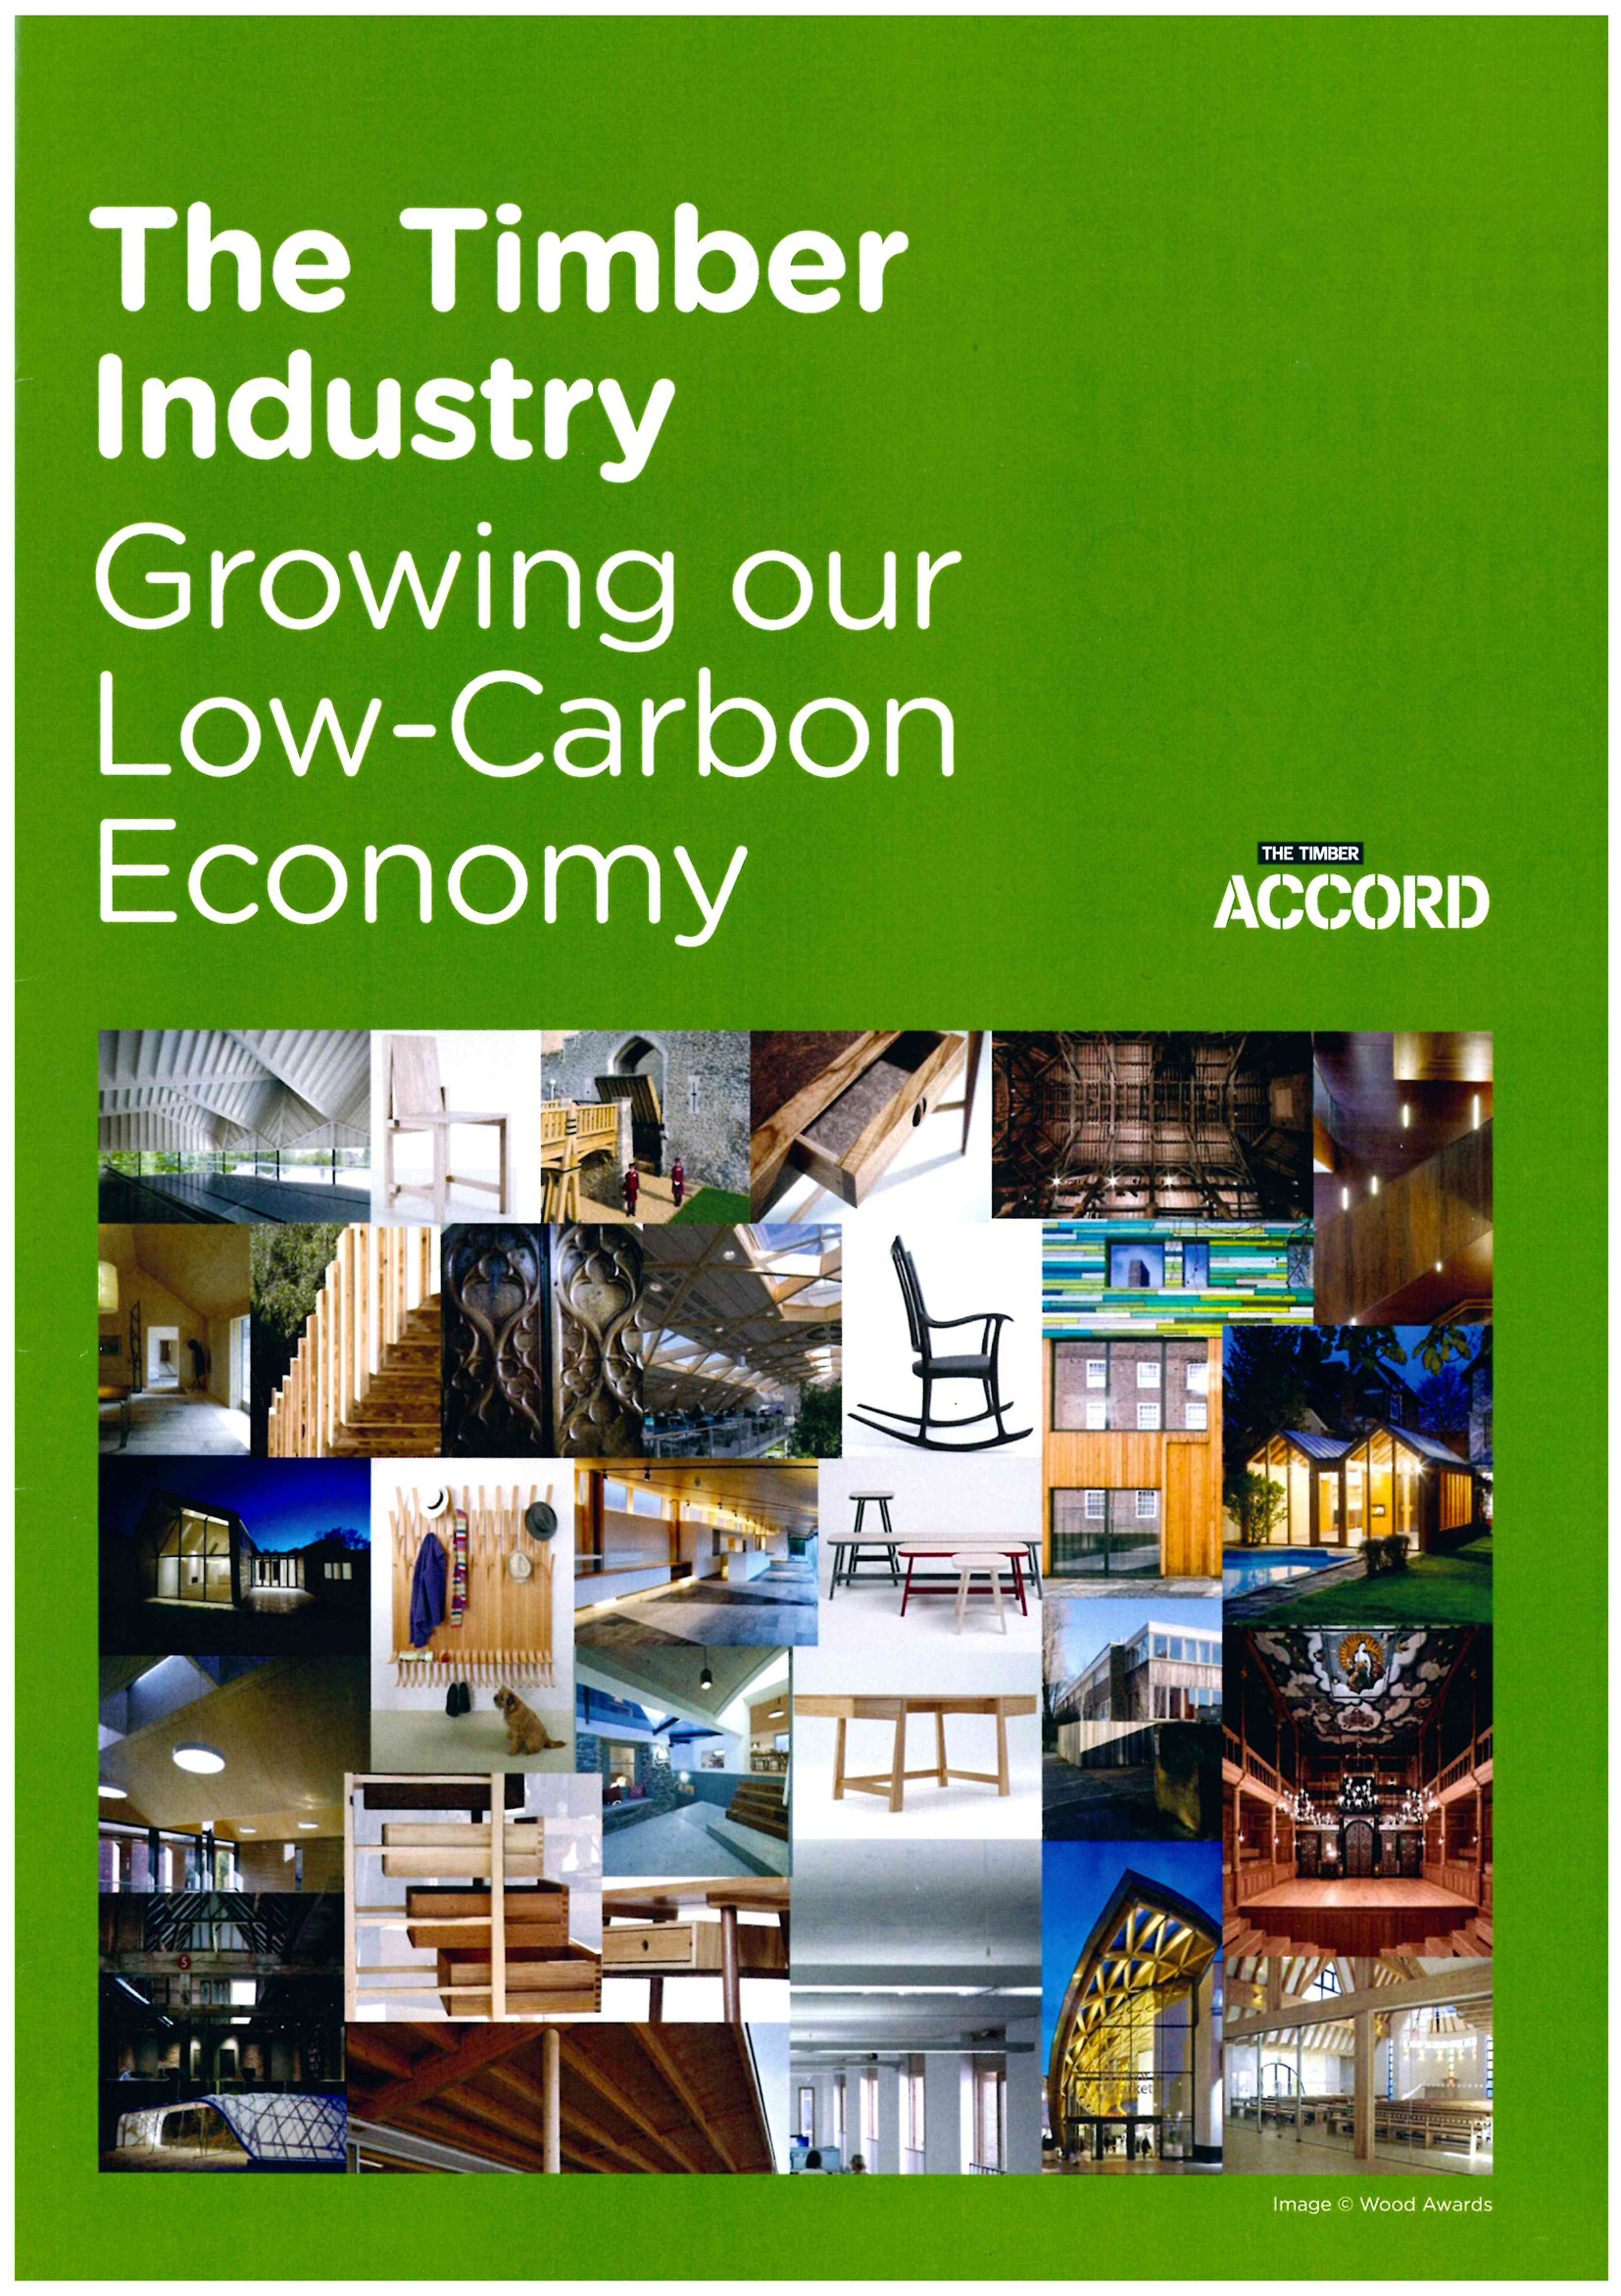 Growing the Low-Carbon Economy